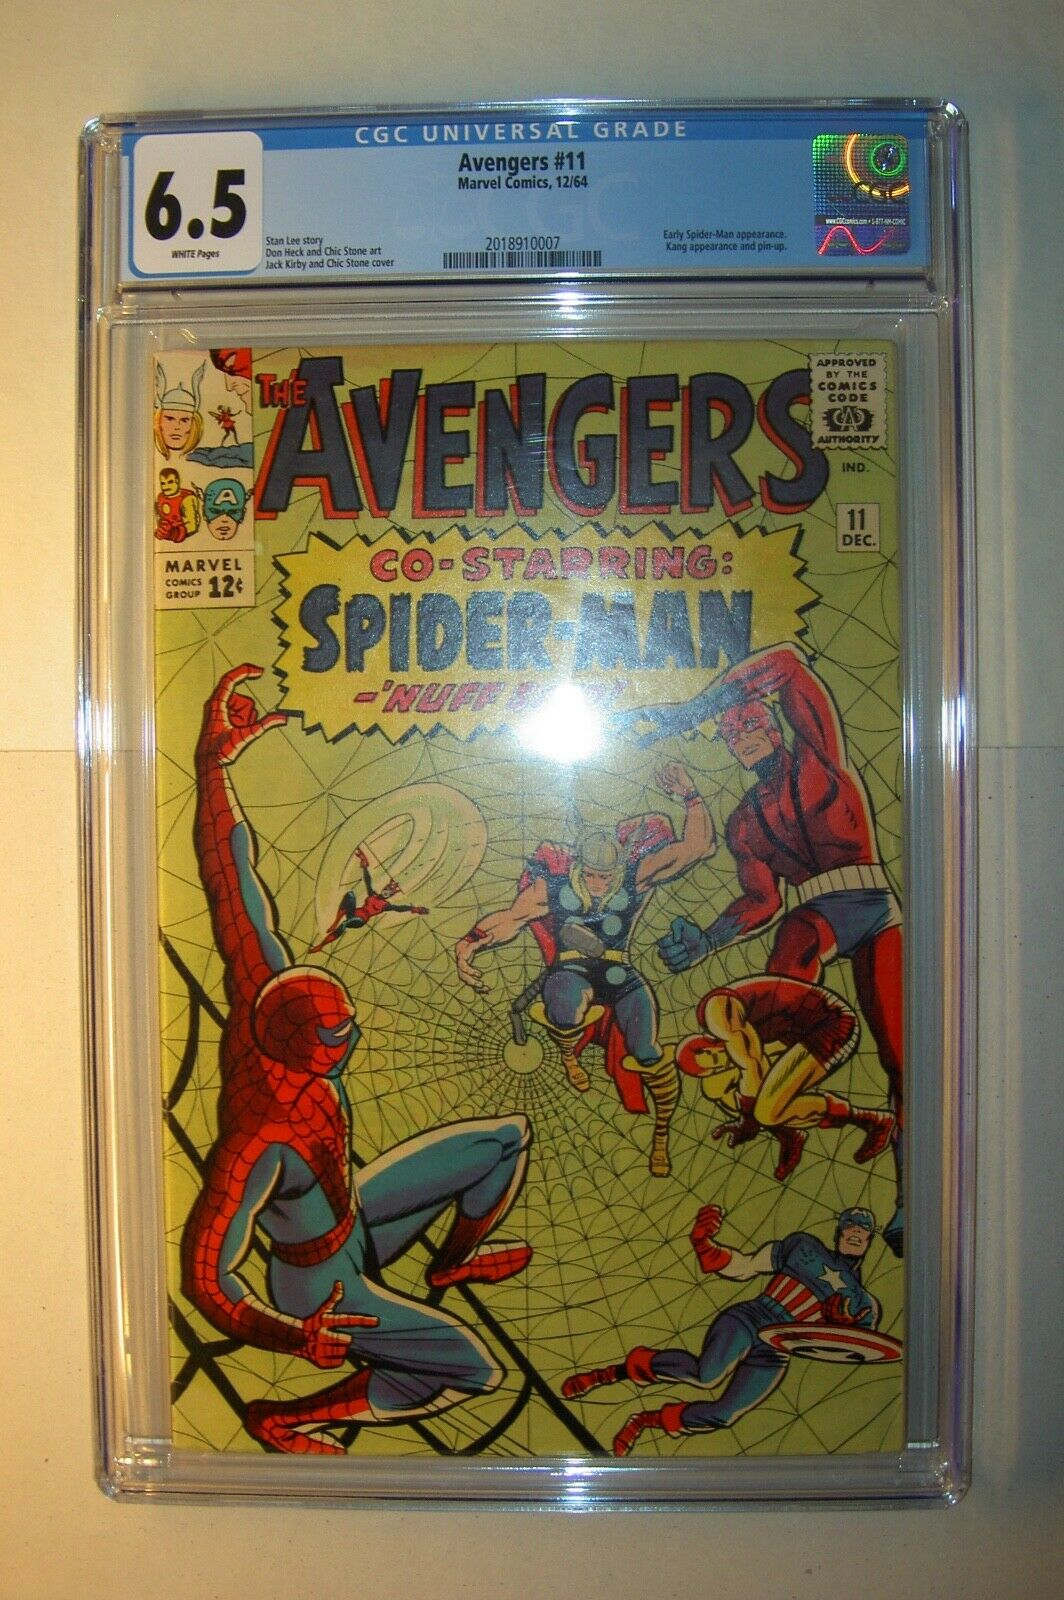 Avengers #11 CGC 6.5, FN+,White pages,1964,early Spider-Man xover Stan Lee story